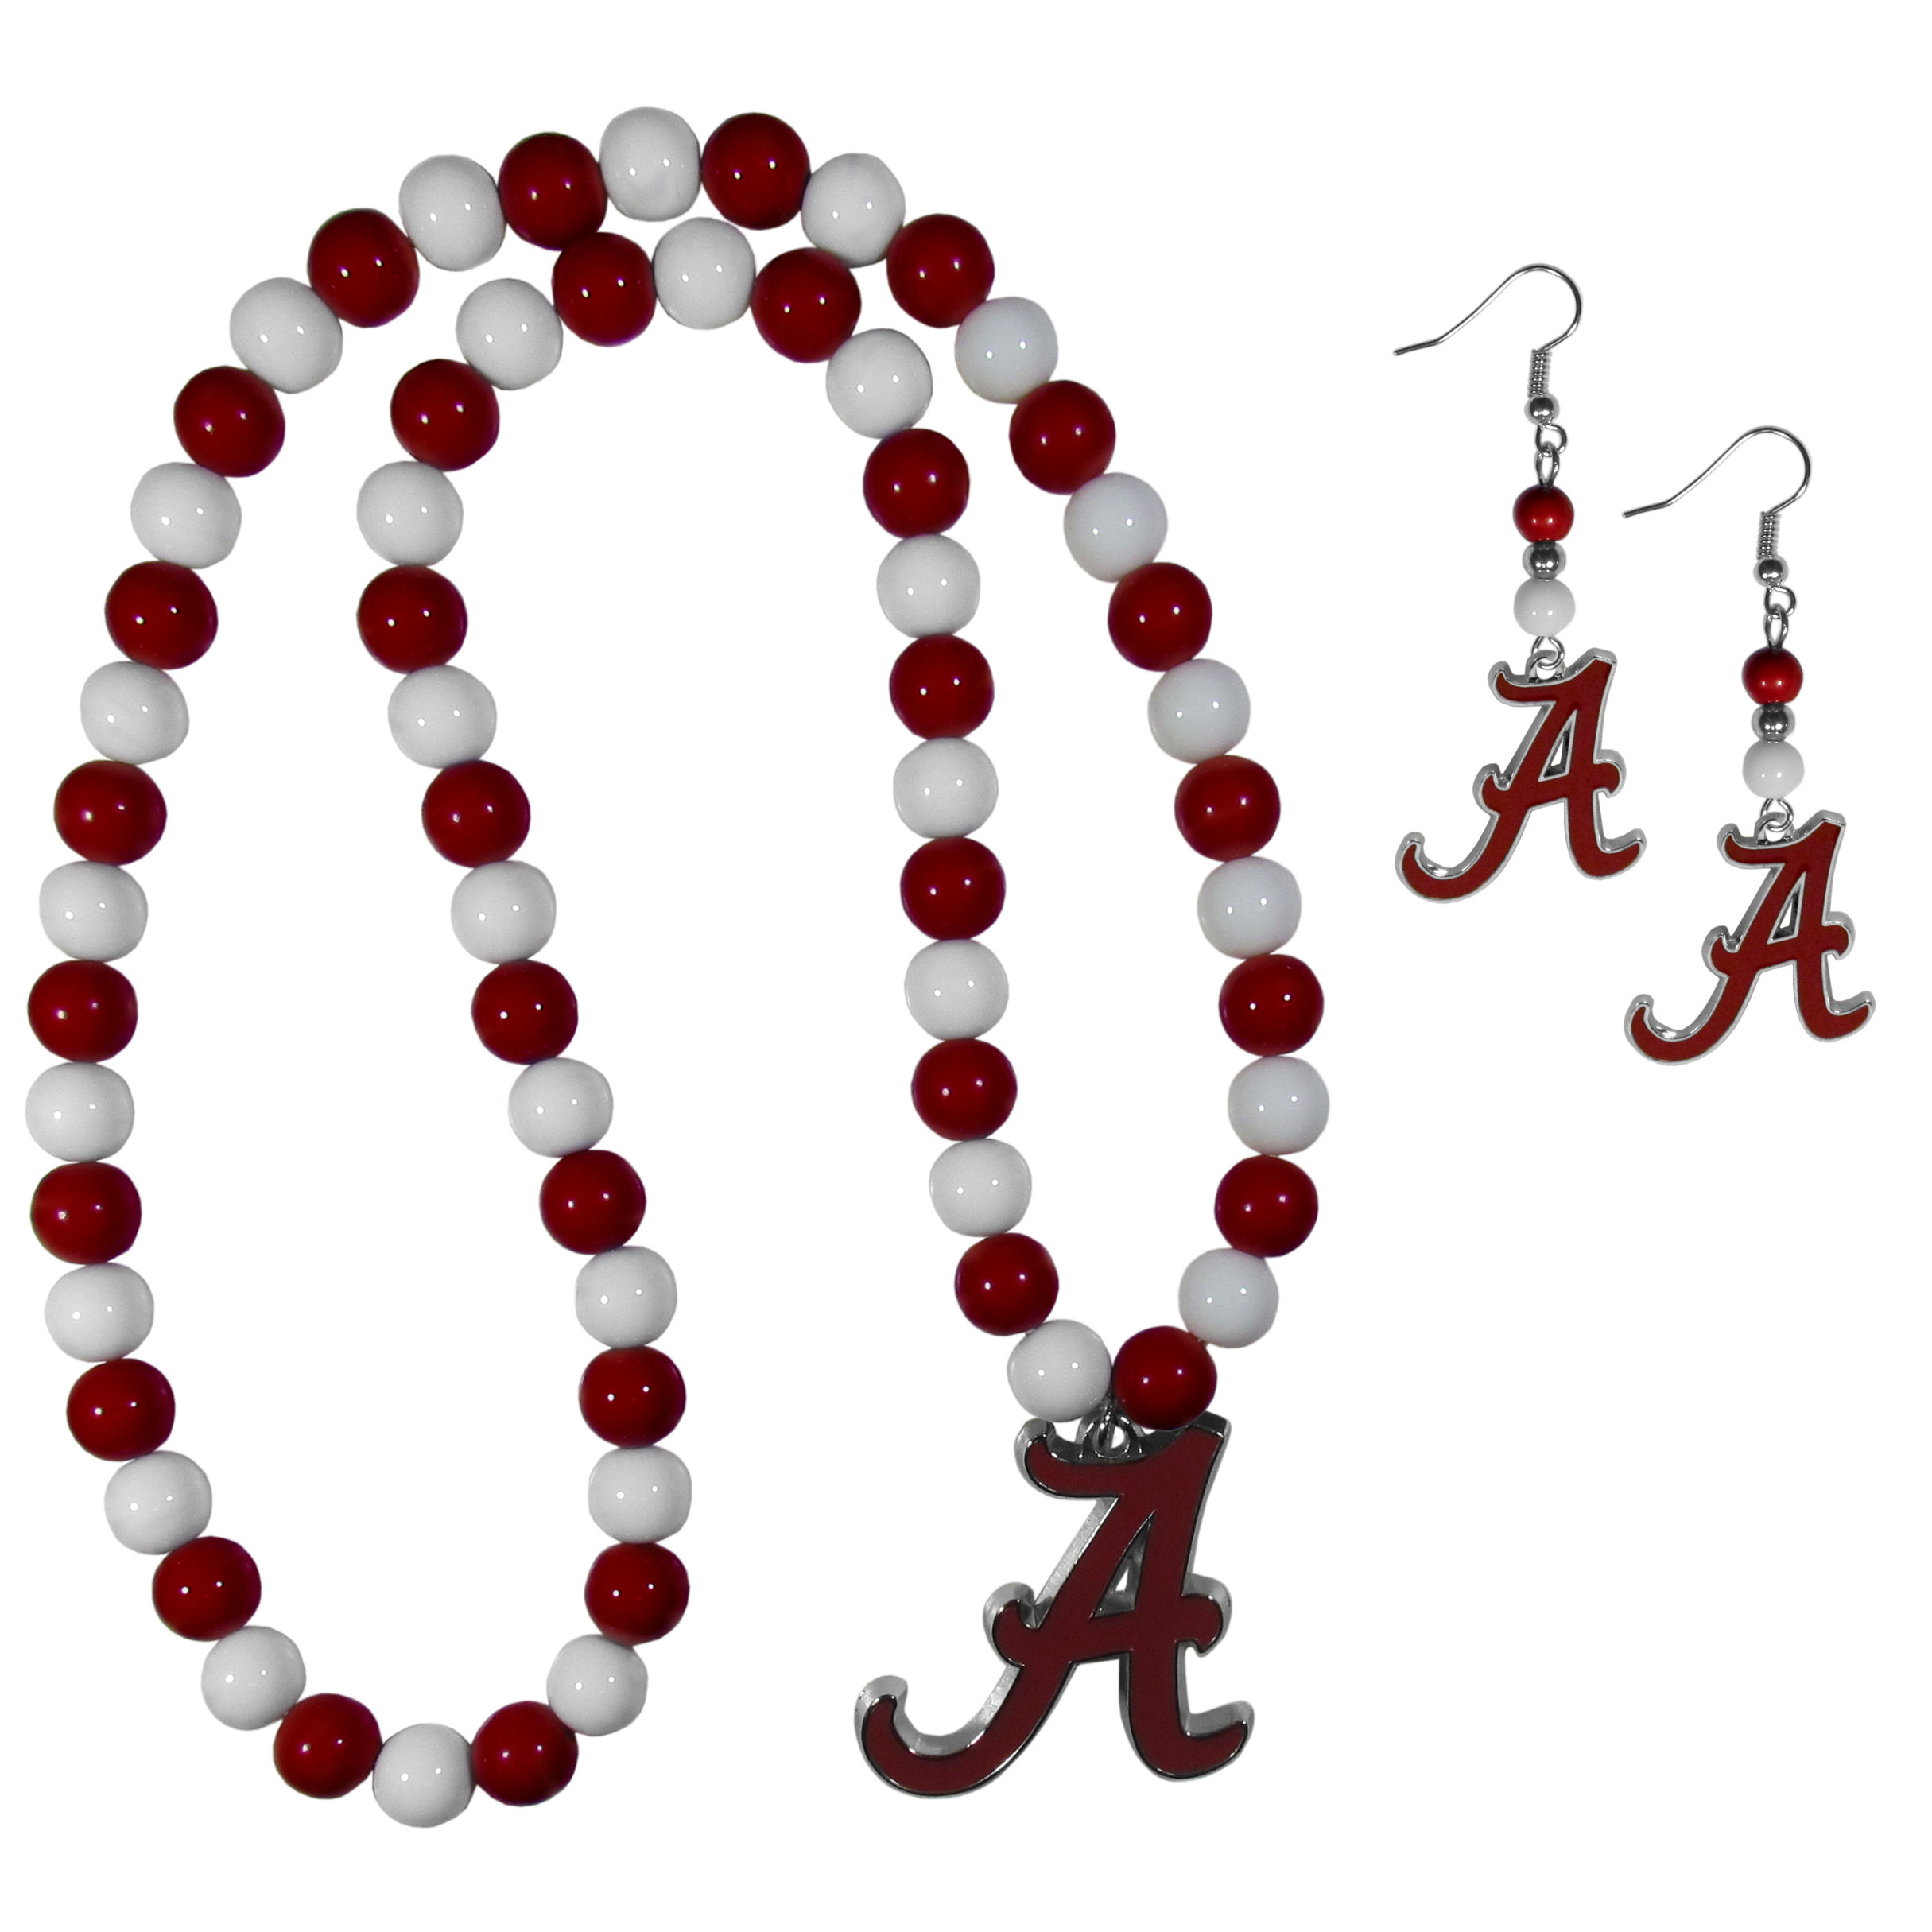 Alabama Crimson Tide Fan Bead Earrings and Necklace Set - These fun and colorful Alabama Crimson Tide fan bead jewelry pieces are an eyecatching way to show off your team spirit. The earrings feature hypoallergenic, nickel free fishhook post and 2 team colored beads with a beautifully carved team charm to finish this attractive dangle look. The mathcing bracelet has alternating team colored beads on a stretch cord and features a matching team charm.